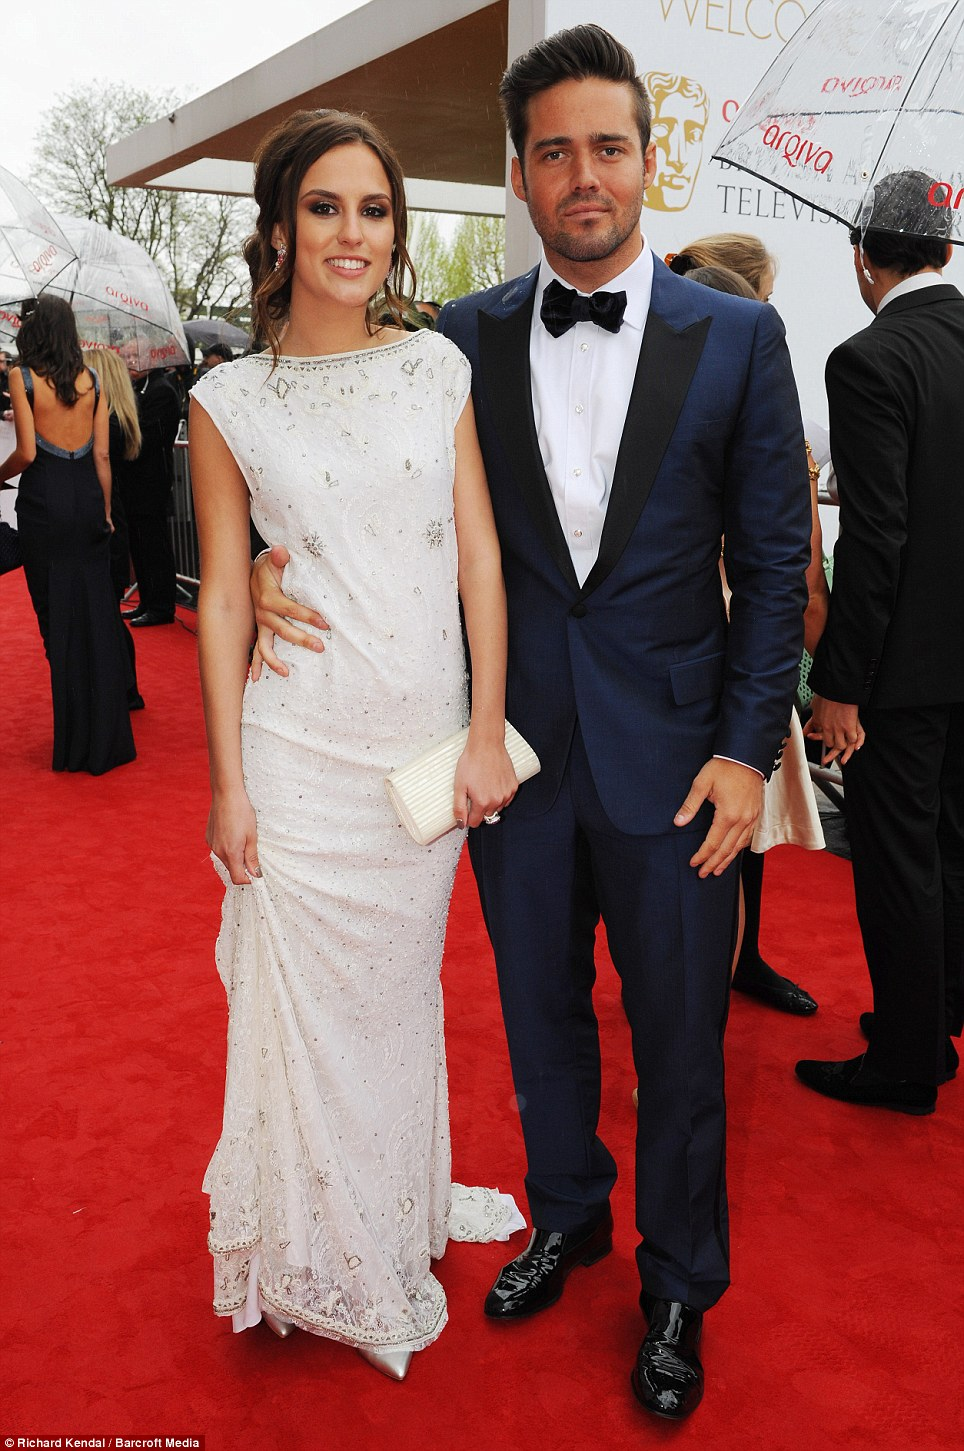 Classy act: Made in Chelsea's Lucy Watson, here with current boyfriend Spencer Matthews, looked beautiful in her full length dress